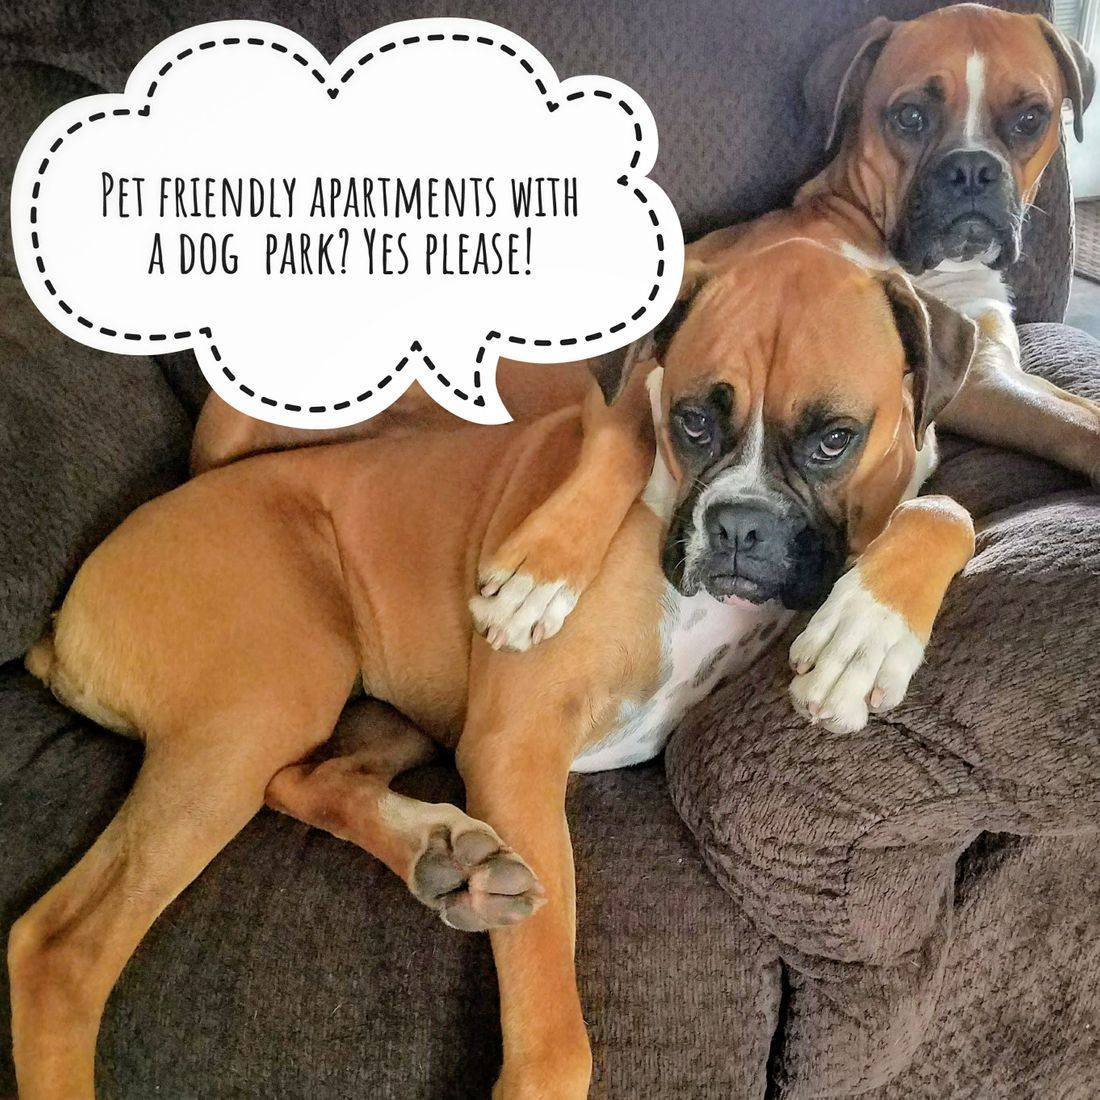 image of 2 boxer dogs, words in a bubble, pet friendly apartments, apartments with pet park